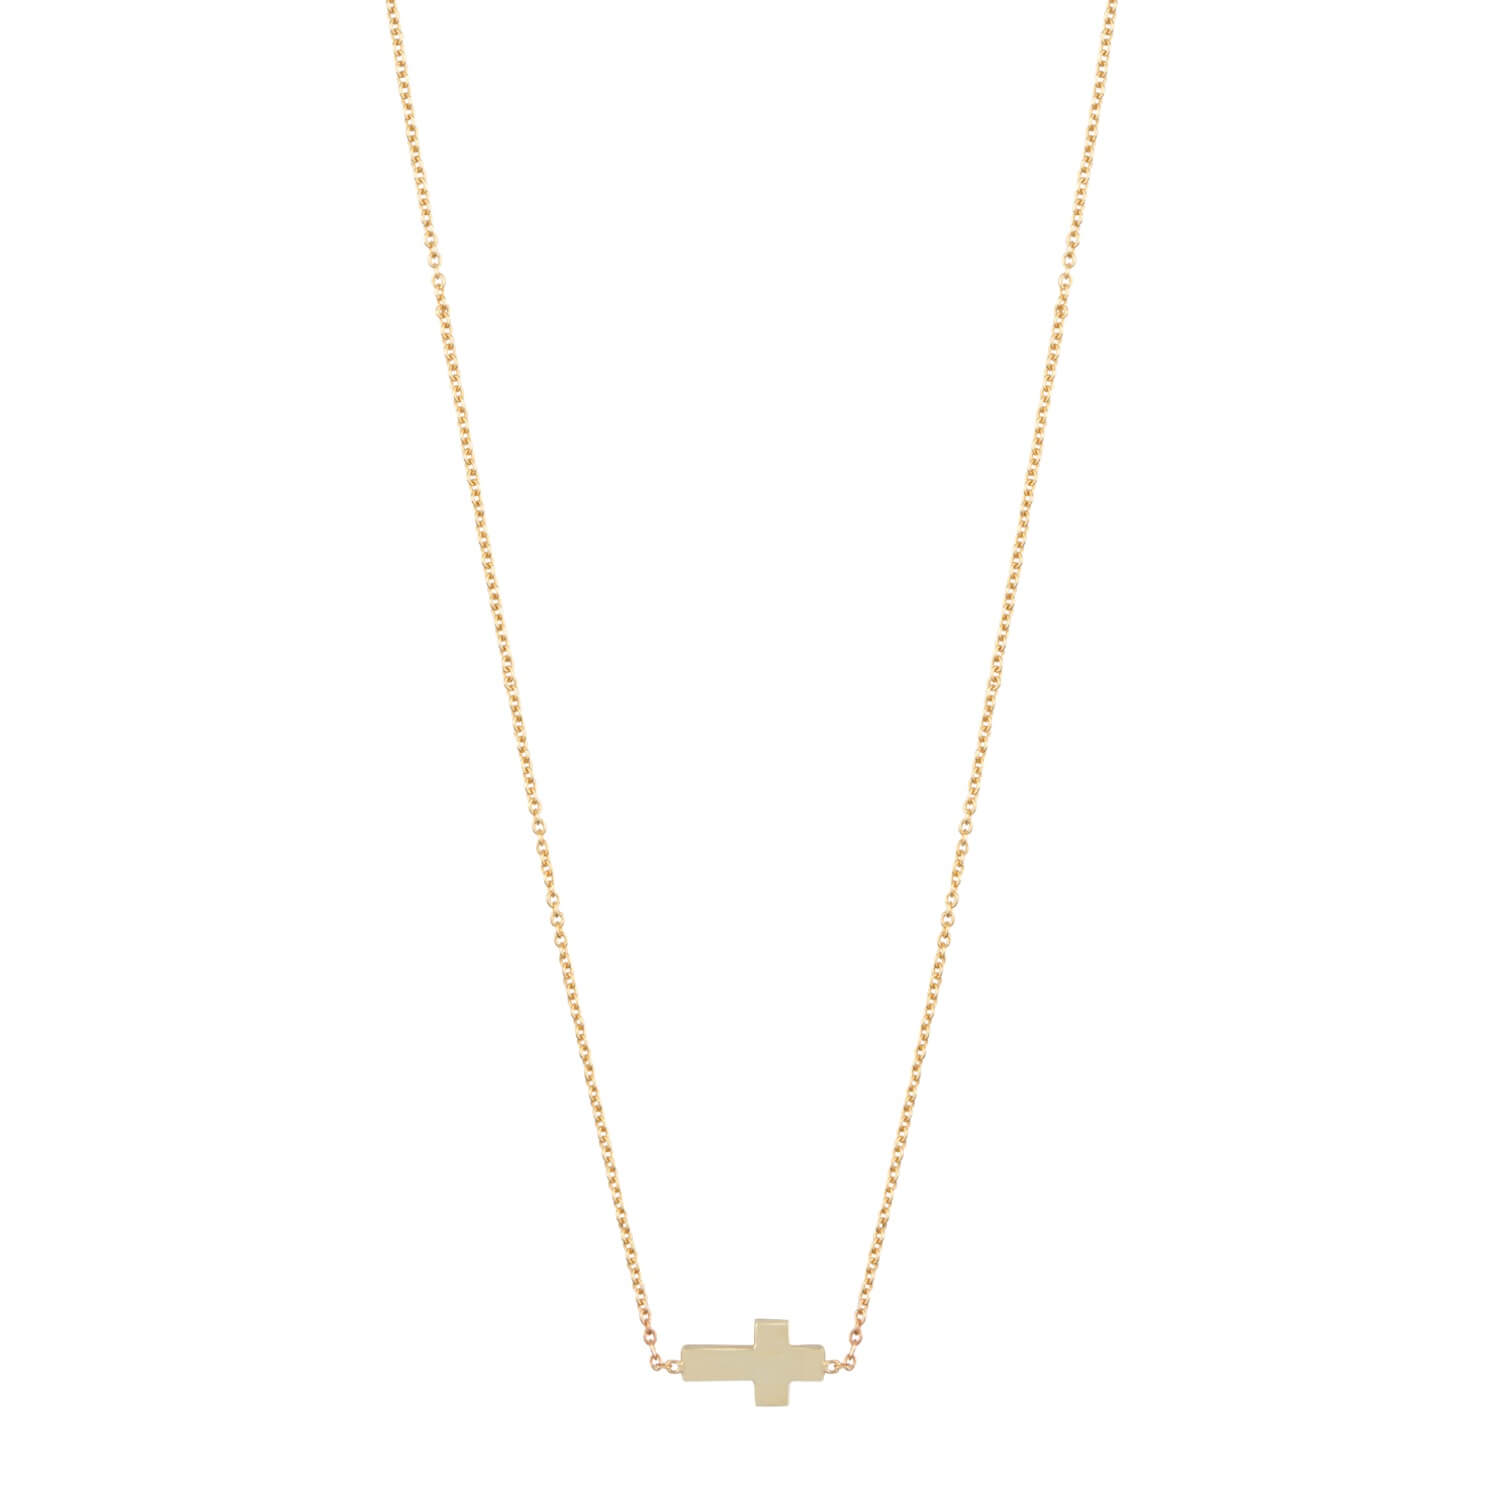 est living gift guide her iconic necklace cross